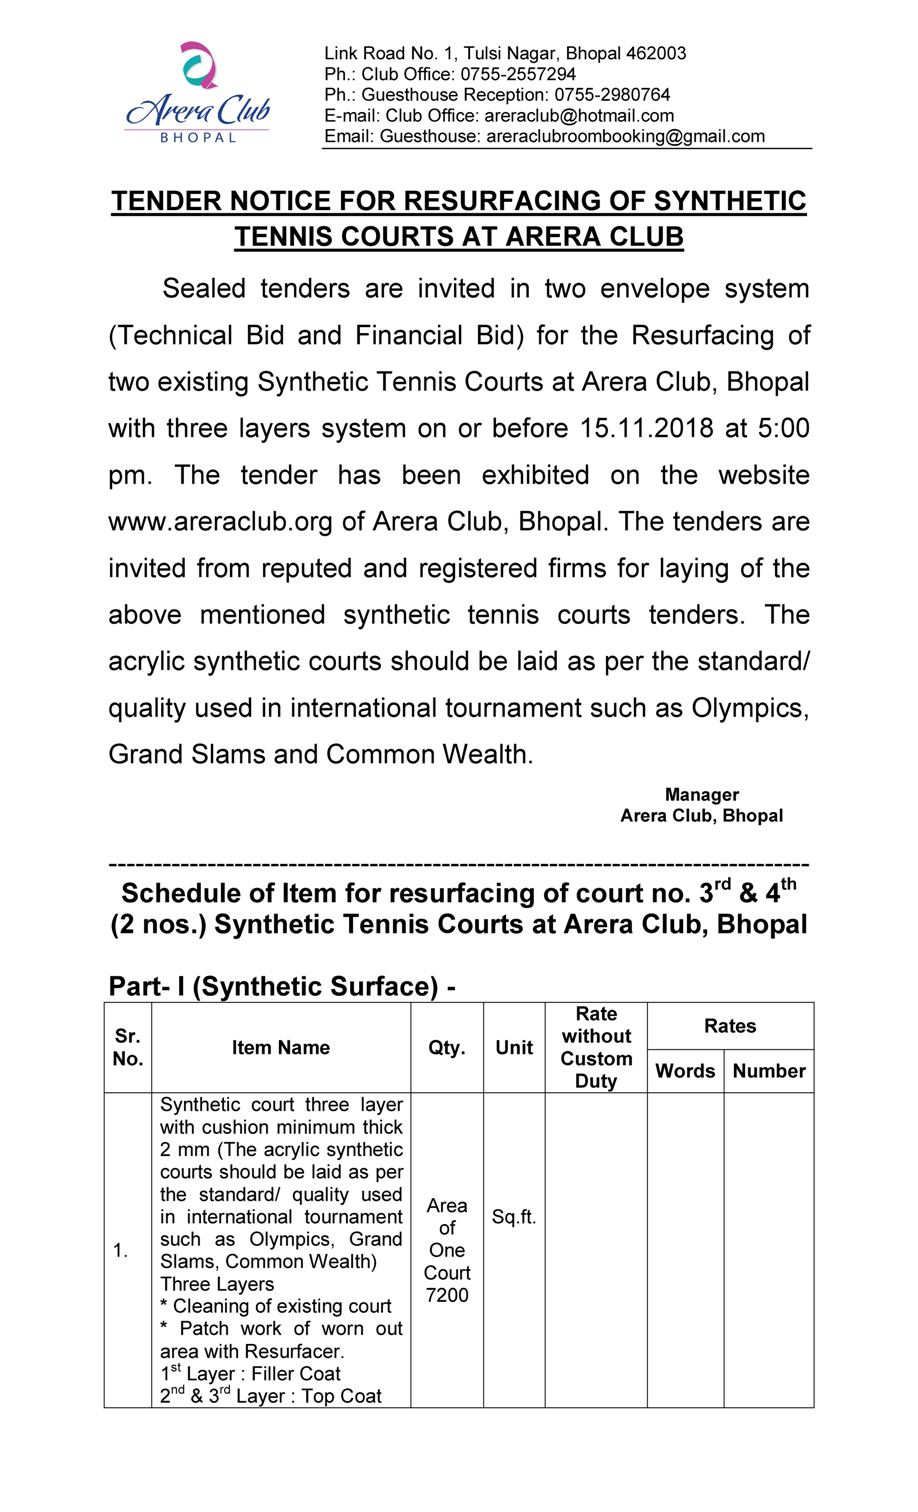 Tender For Resurfacing Of Synthetic Tennis Courts